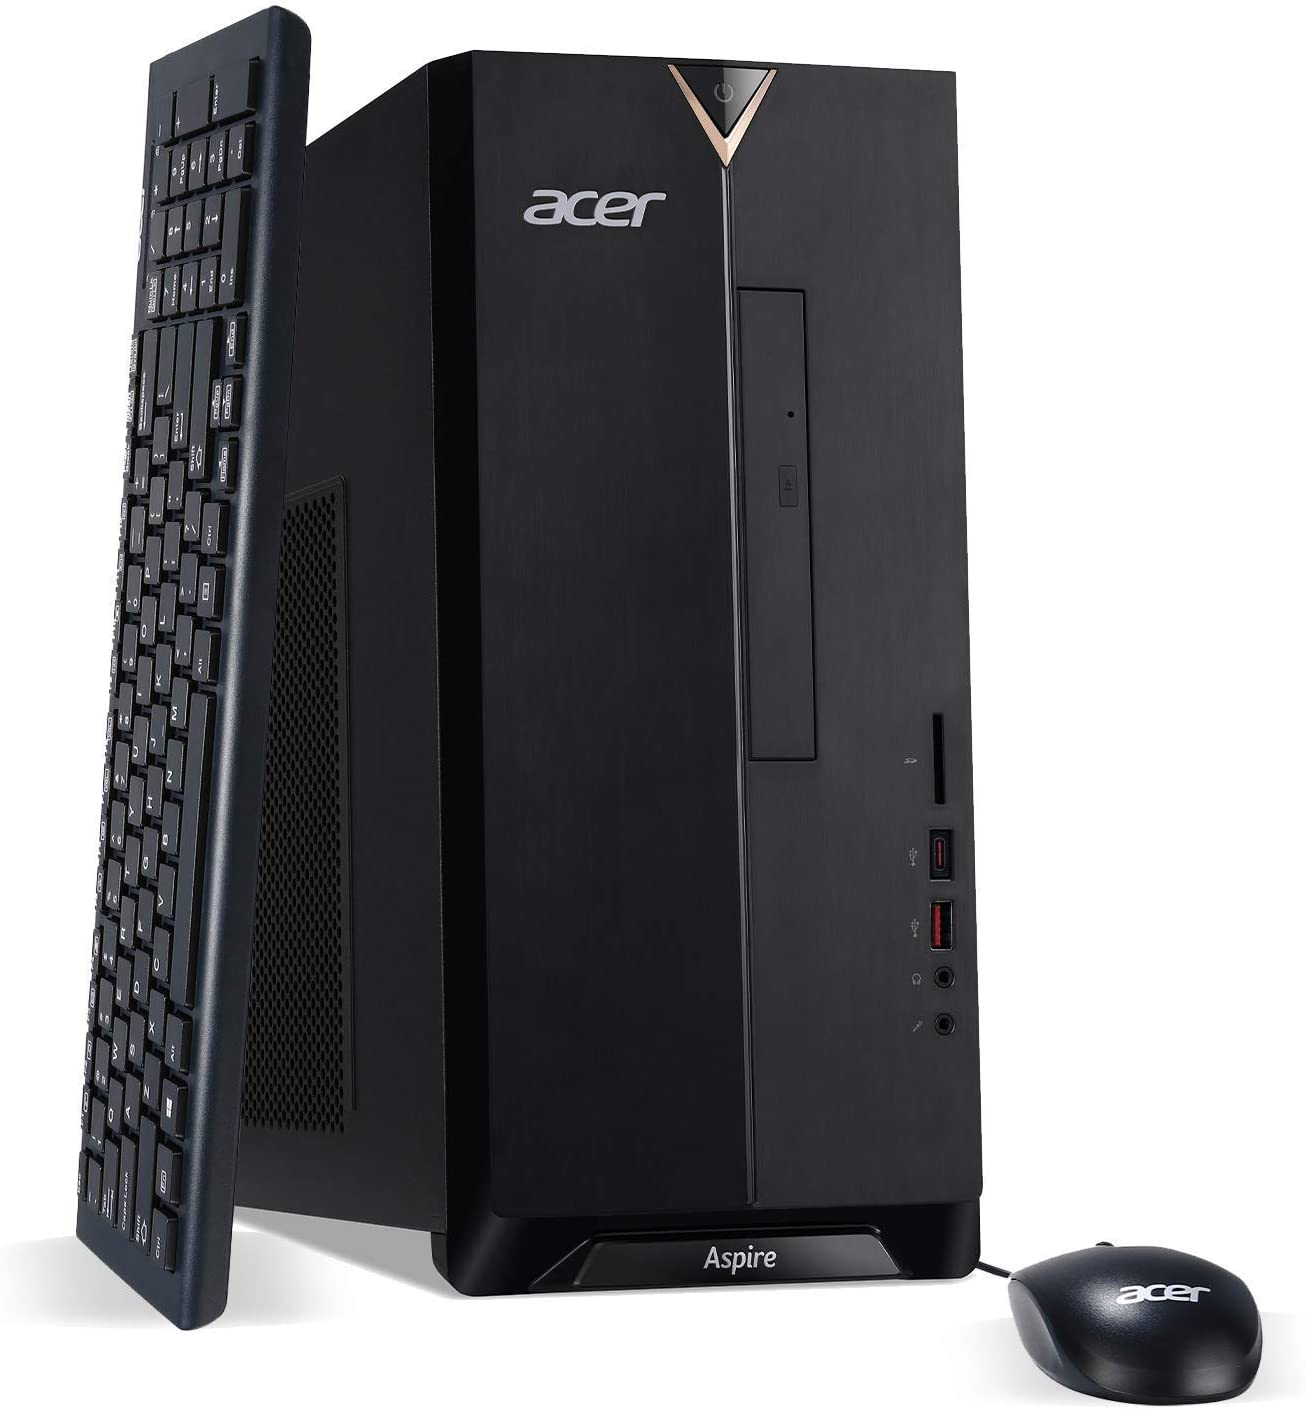 Acer Aspire TC-885-UA92 Desktop, 9th Gen Intel Core i5-9400, 12GB DDR4, 512GB SSD, 8X DVD, 802.11ac WiFi, USB 3.1 Type C, Windows 10 Home (Renewed)